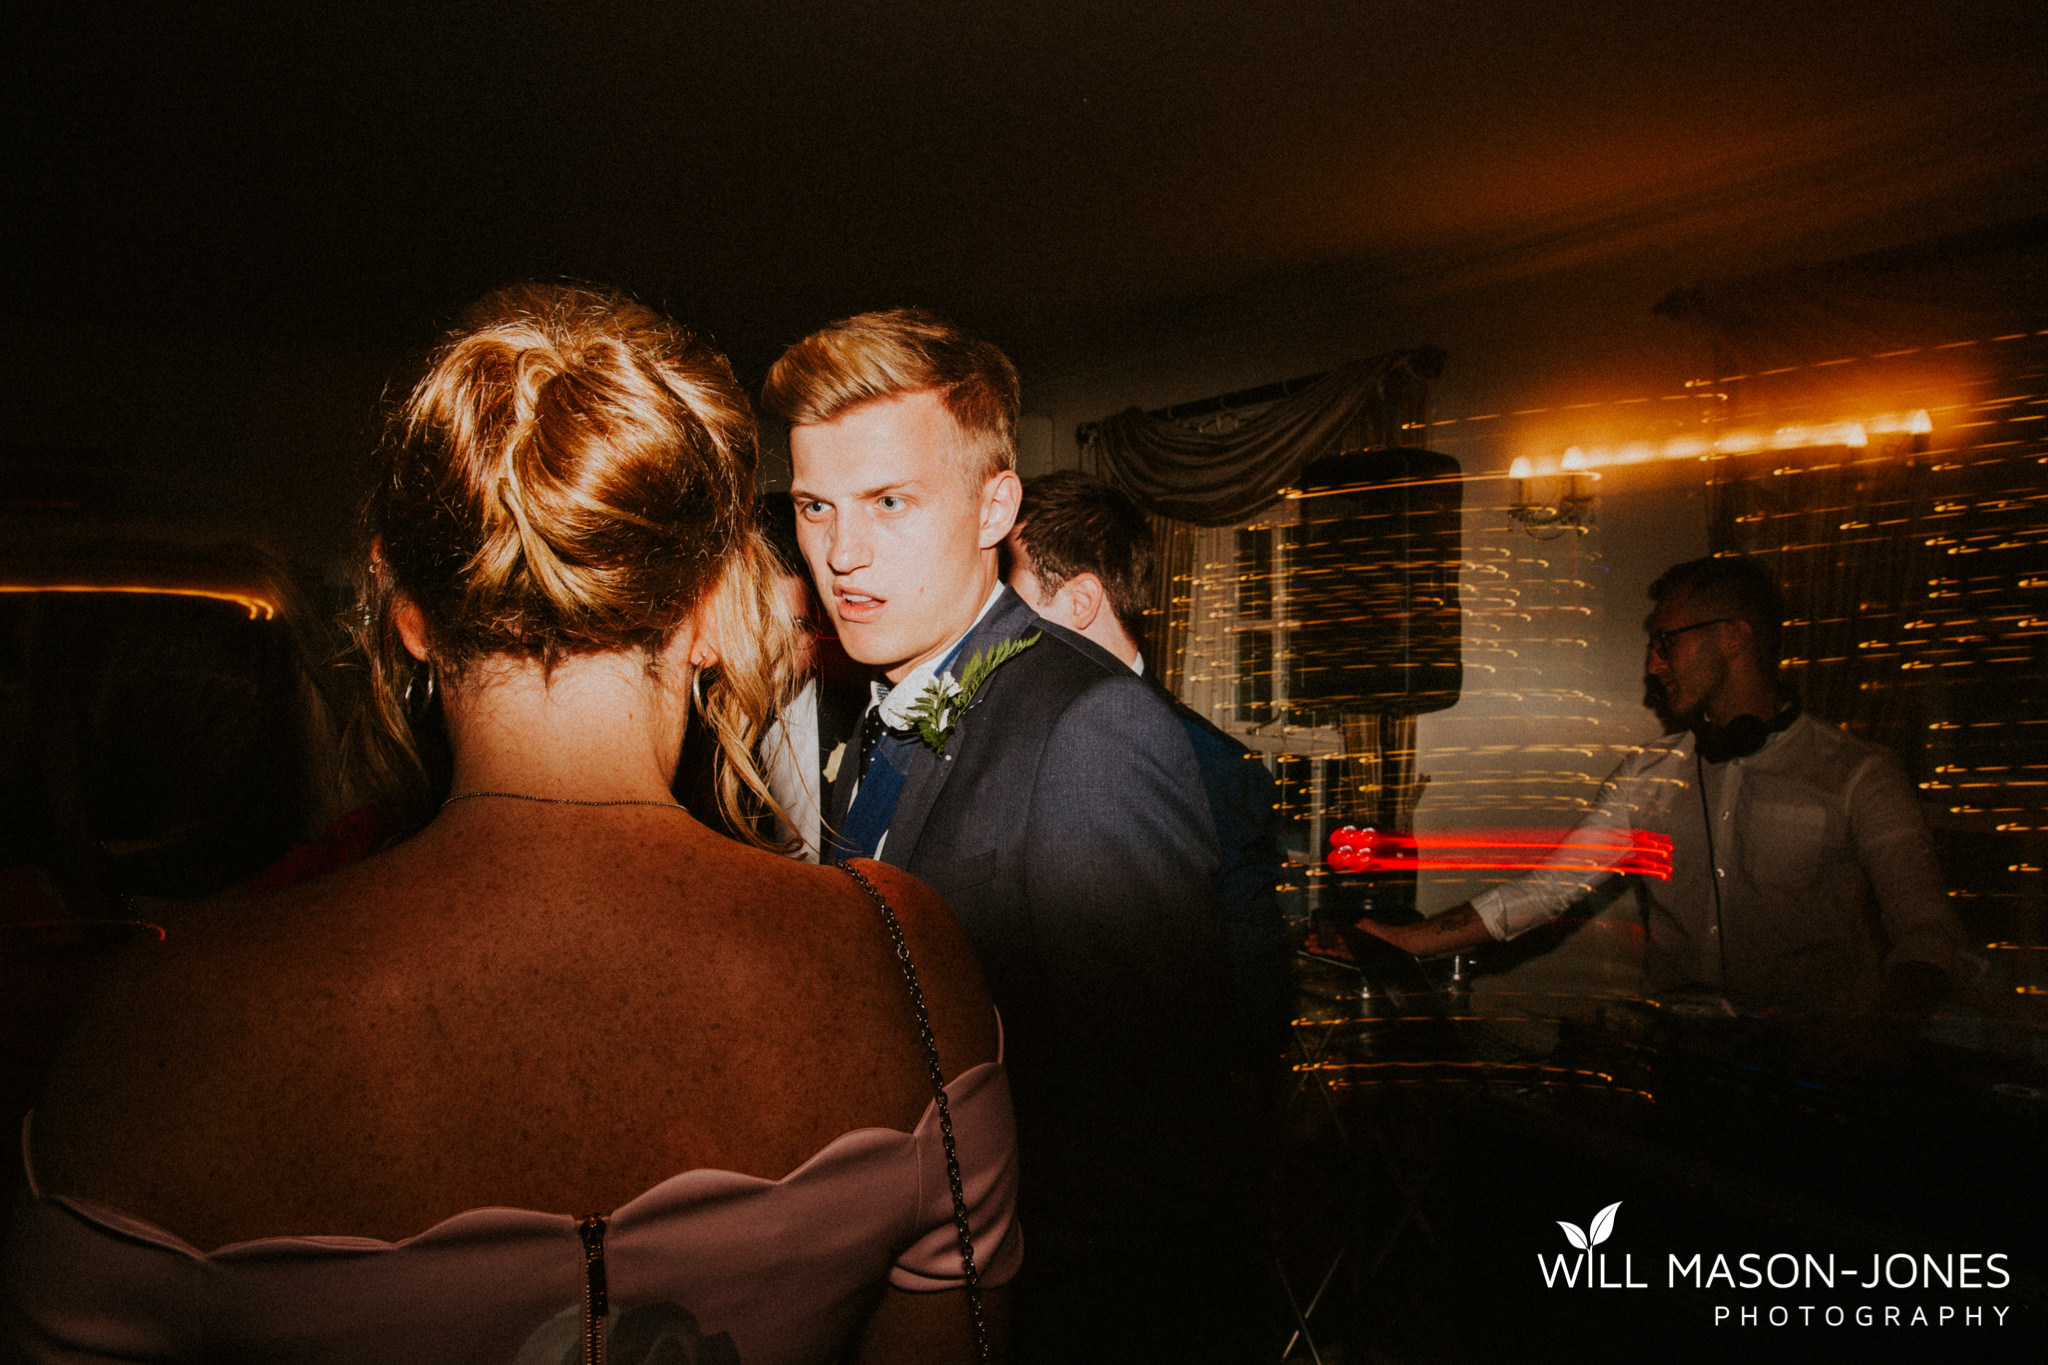 dancefloor-wedding-reception-singleton-lodge-fun-2.jpg